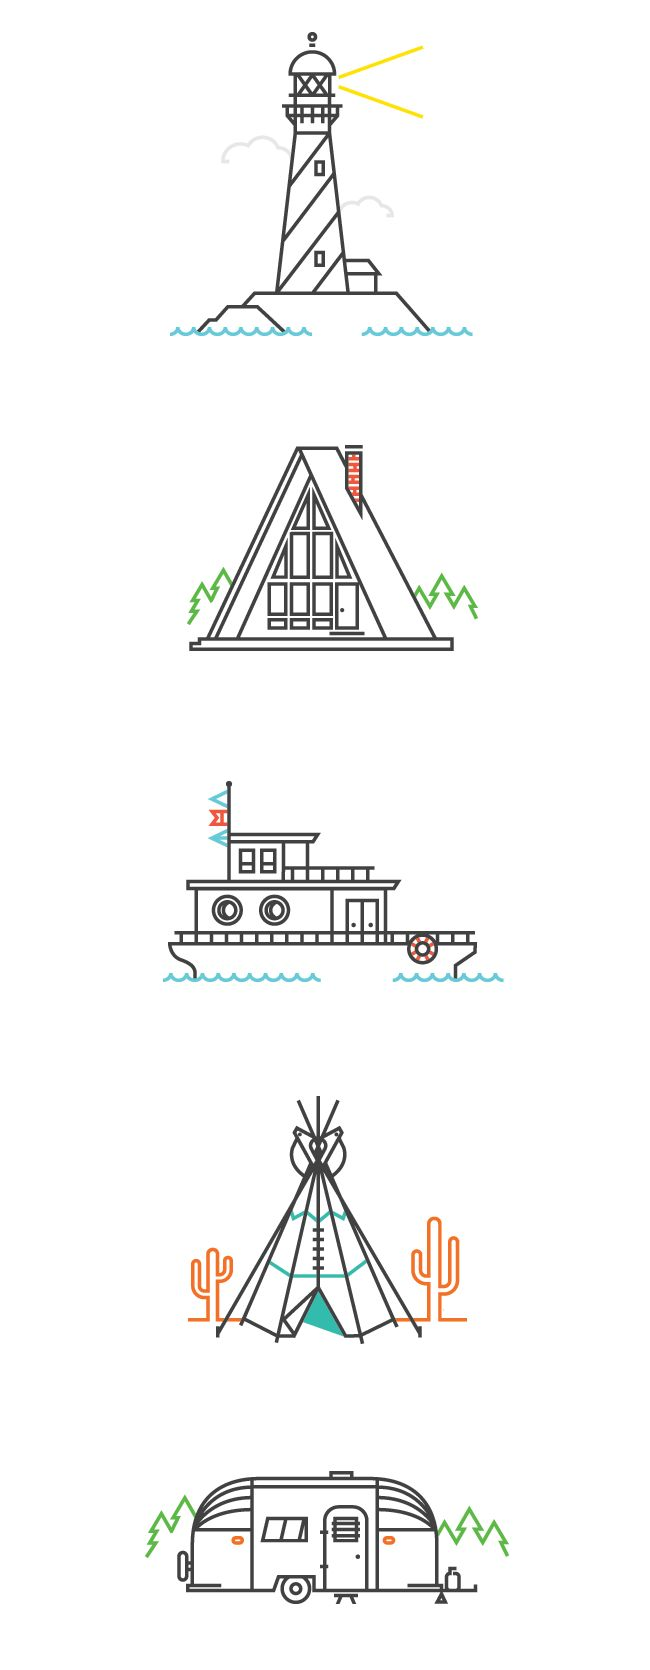 Really simple illustrations